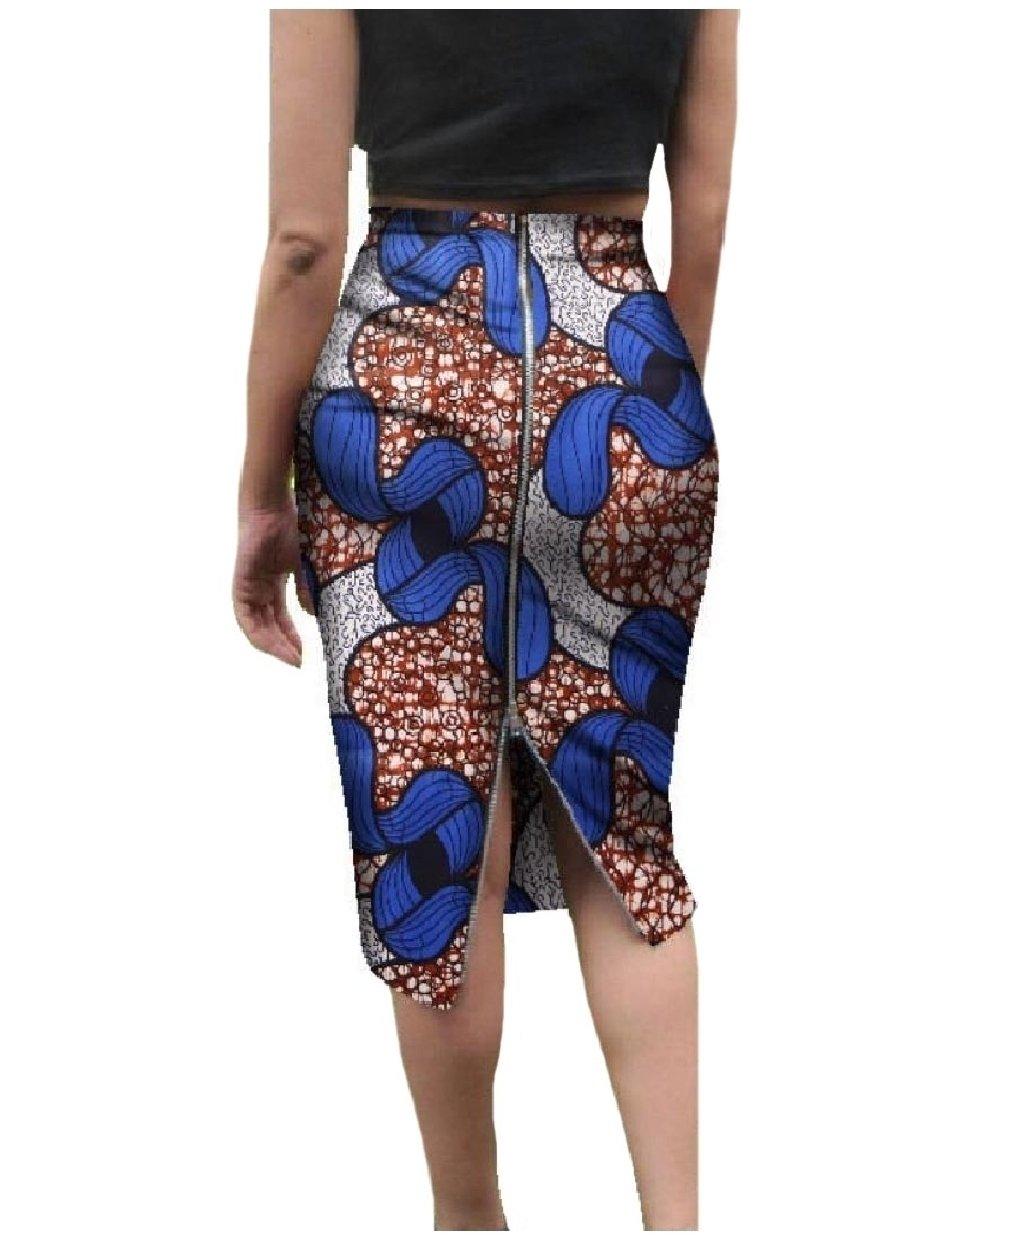 SportsX Womens Dashiki African Wax Fabric With Zips Fine Cotton Skirt argent S by SportsX (Image #1)